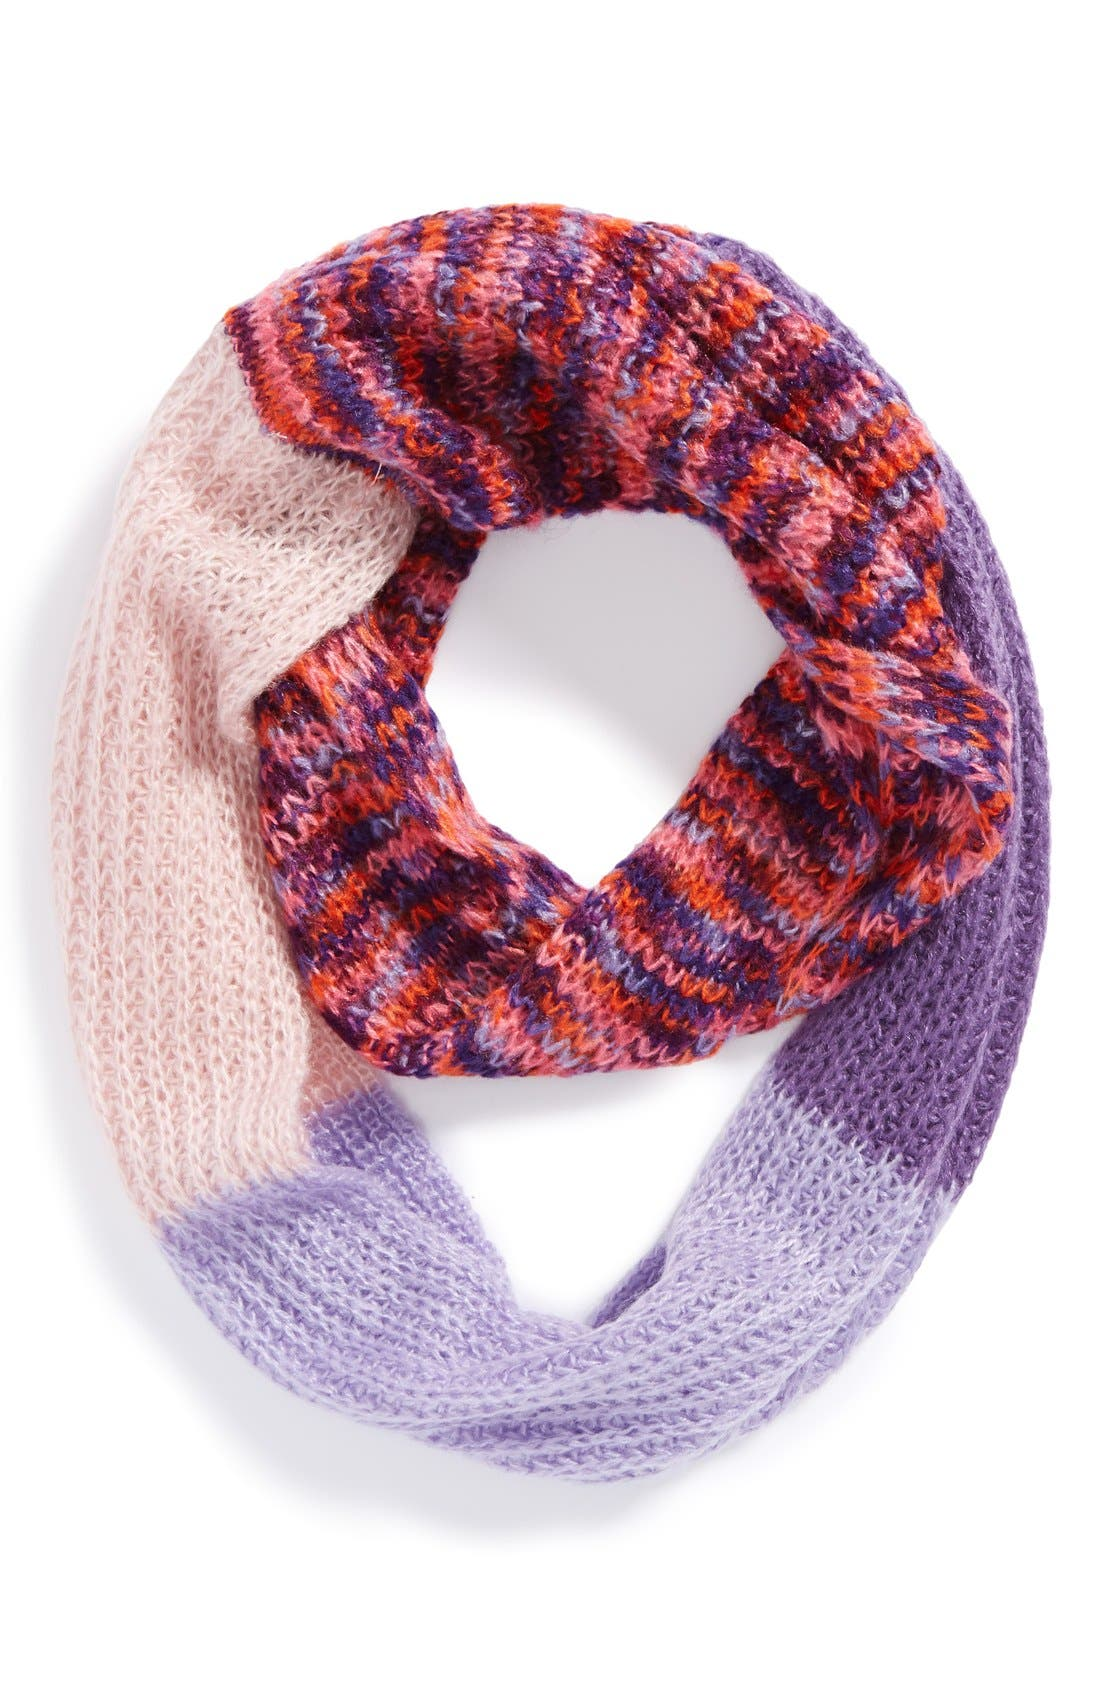 Main Image - Capelli of New York Colorblock Infinity Scarf (Girls)